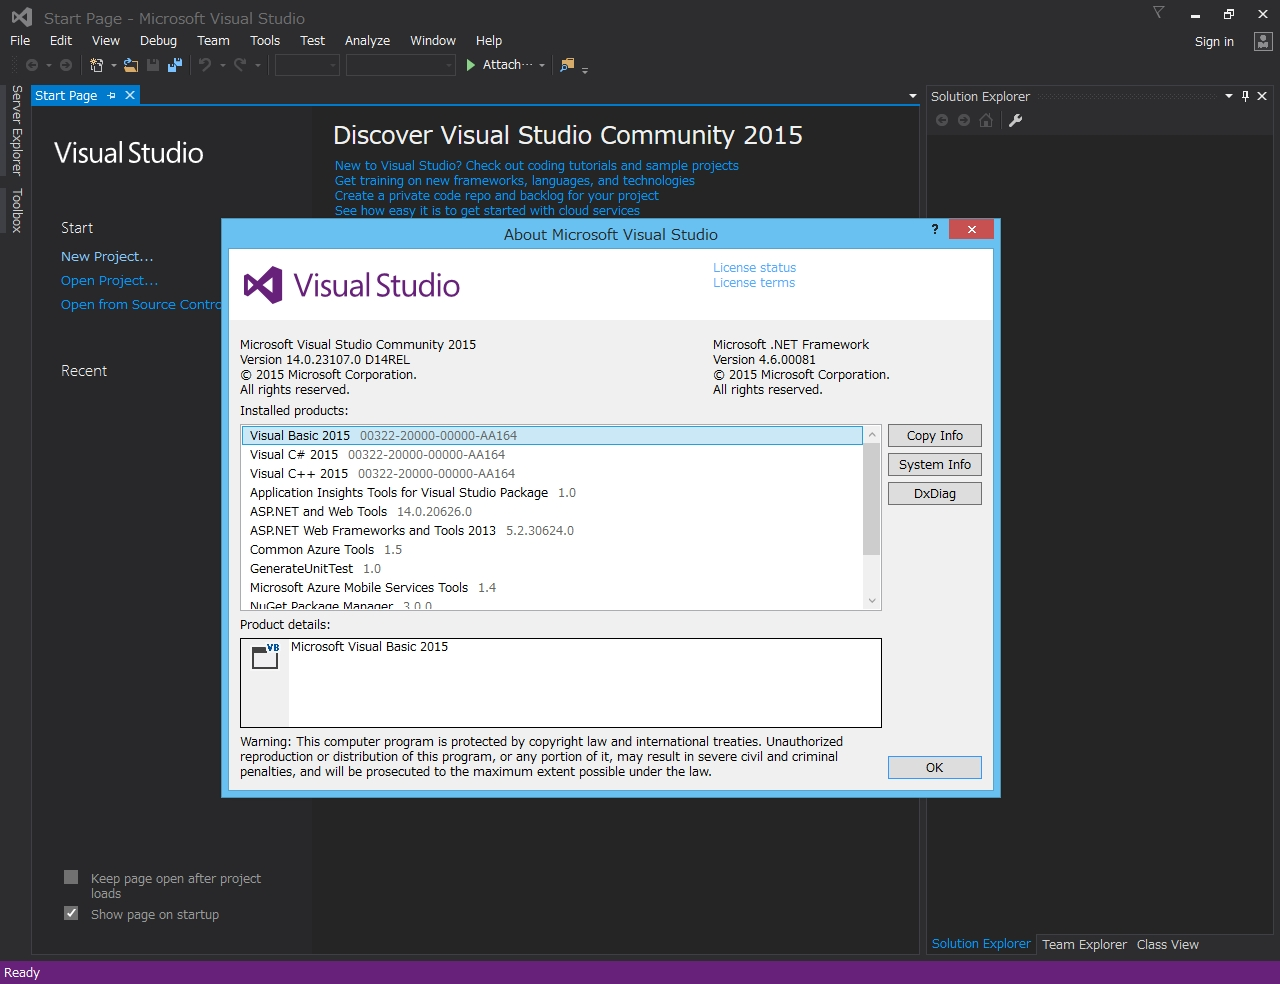 VSCommunity2015_OfficeTools_02